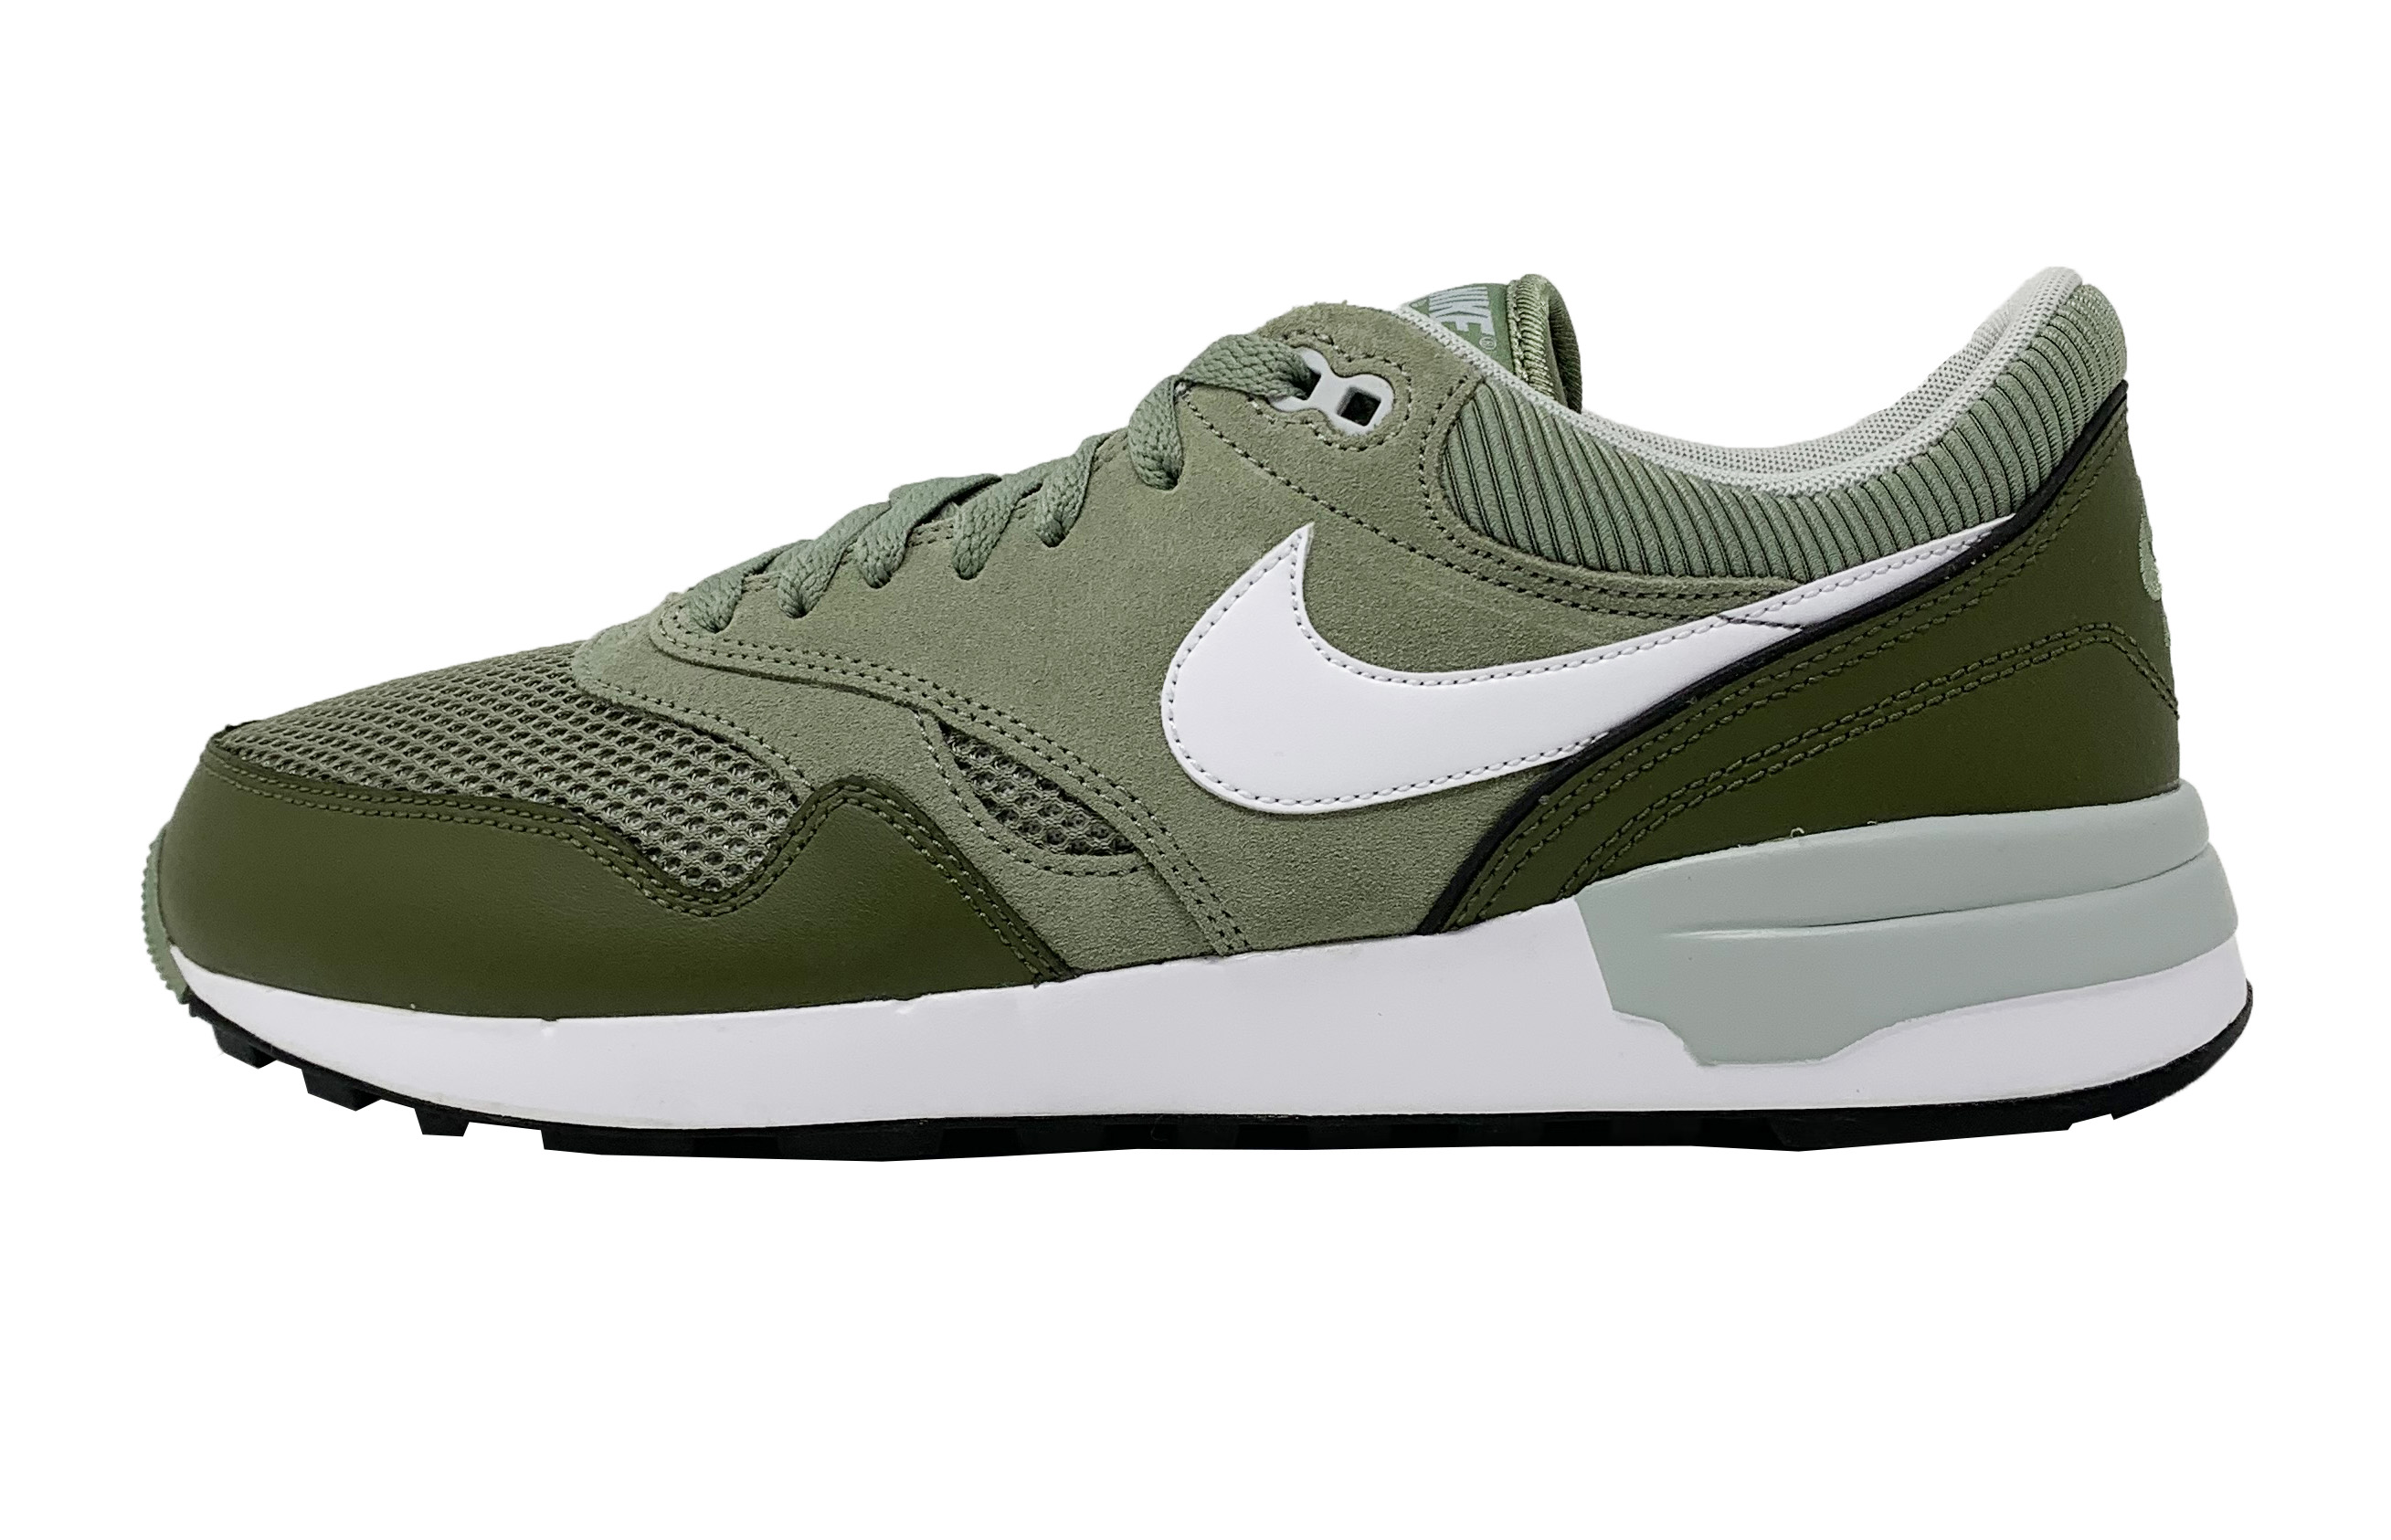 3b432c88a88d0 Nike Air Odyssey 652989 301 Mens Trainers